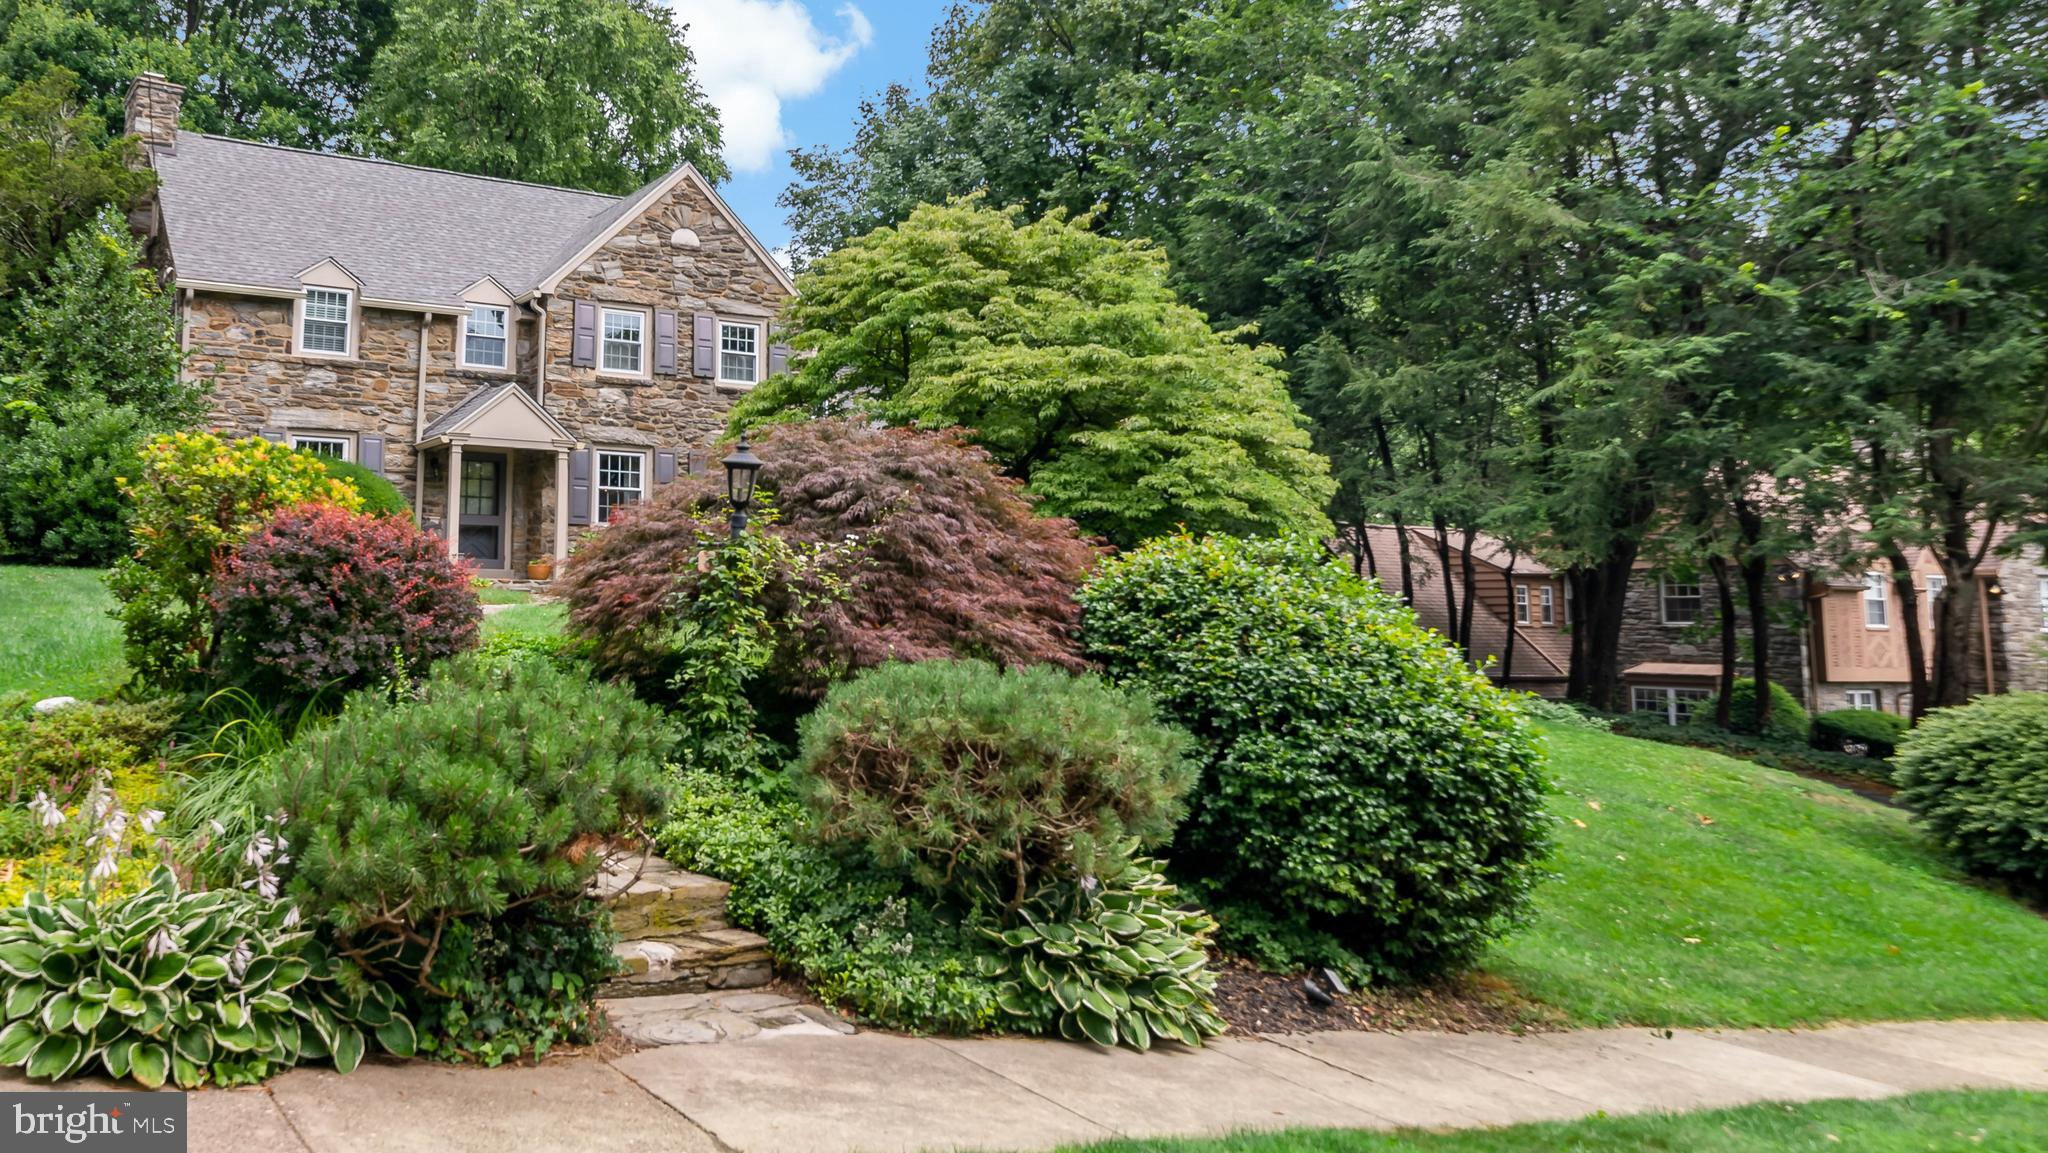 Settle right into this charming stone colonial home in Bala Cynwyd and enjoy comfortable family living in a great location near schools, shops, restaurants and other amenities! The 4 bedroom, 2.2 bathroom beauty sits on lovely landscaped grounds and offers a gracious center hall layout greeting you inside. Wood floors and staircase in the entryway make an elegant first impression. At left you will find a spacious living room with a wood-burning brick fireplace for quiet family nights and entertaining guests. Across the foyer is a lovely dining room for sharing casual and formal meals.  Connected is an enclosed sunroom, with a Southern exposure backdrop, where you can serve coffee and cocktails, or read and relax with a backdrop of lush property views through walls of windows. The kitchen is inviting and lovely featuring stainless steel appliances, tiled flooring, and a sunny breakfast room. From here, glass-paneled French doors lead out to the brick patio for barbecues, summer parties and backyard fun. Also on the 1st floor is a family room converted from a garage for watching TV, playing games and conversing, enclosed laundry, as well as a convenient powder room. Upstairs sleeping quarters offer 4 bedrooms including the serene primary suite with its own private bath. One of the other 3 bedrooms has an en-suite powder room, and the remaining 2 access a full hall bath. Plus there are plenty of closets, a rear staircase, and steps to a generous walk-up attic that can be finished for a 5th bedroom, playroom, or exercise room. Everyone will love hanging out in the full finished basement used as recreation/play space, a workout area and home office, with lots of room for storage. Driveway parking, 2 zoned heating and central air, new roof, water heater and replacement windows, make this well-maintained home a true gem.